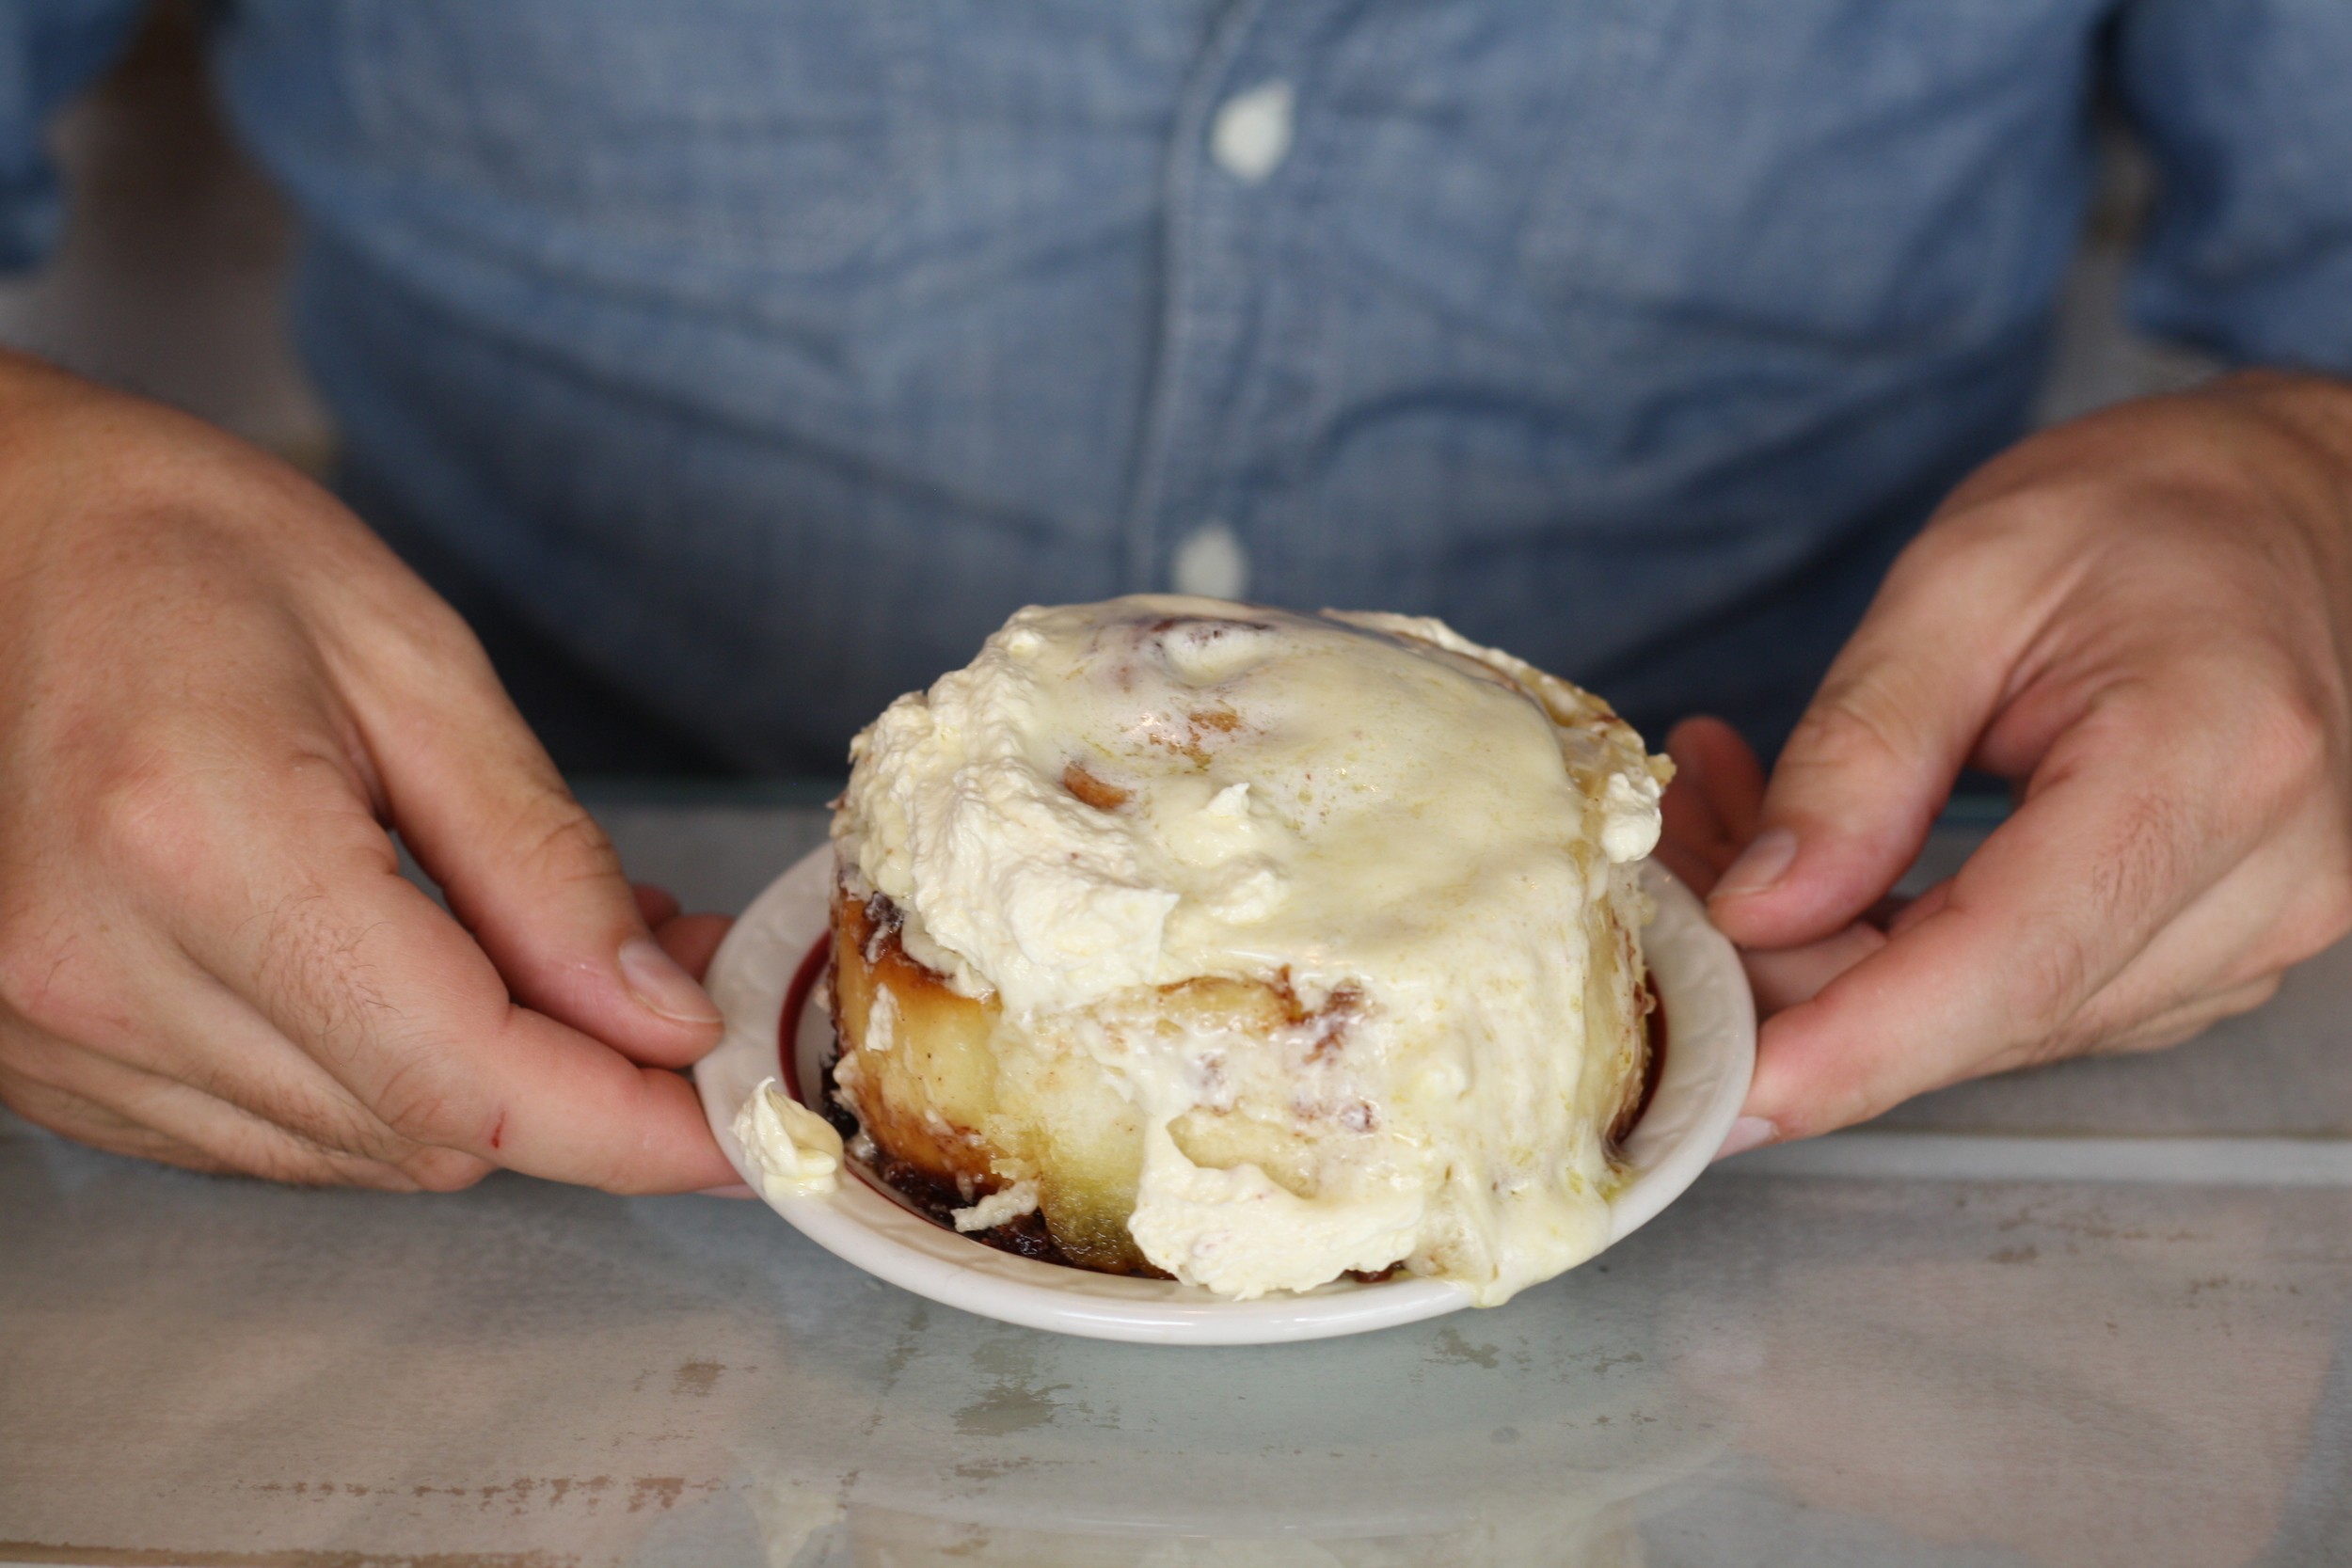 Breakfast of champions - Joey's cinnamon rolls at Royal's Bagels. Perfect for kicking off a Saturday morning.